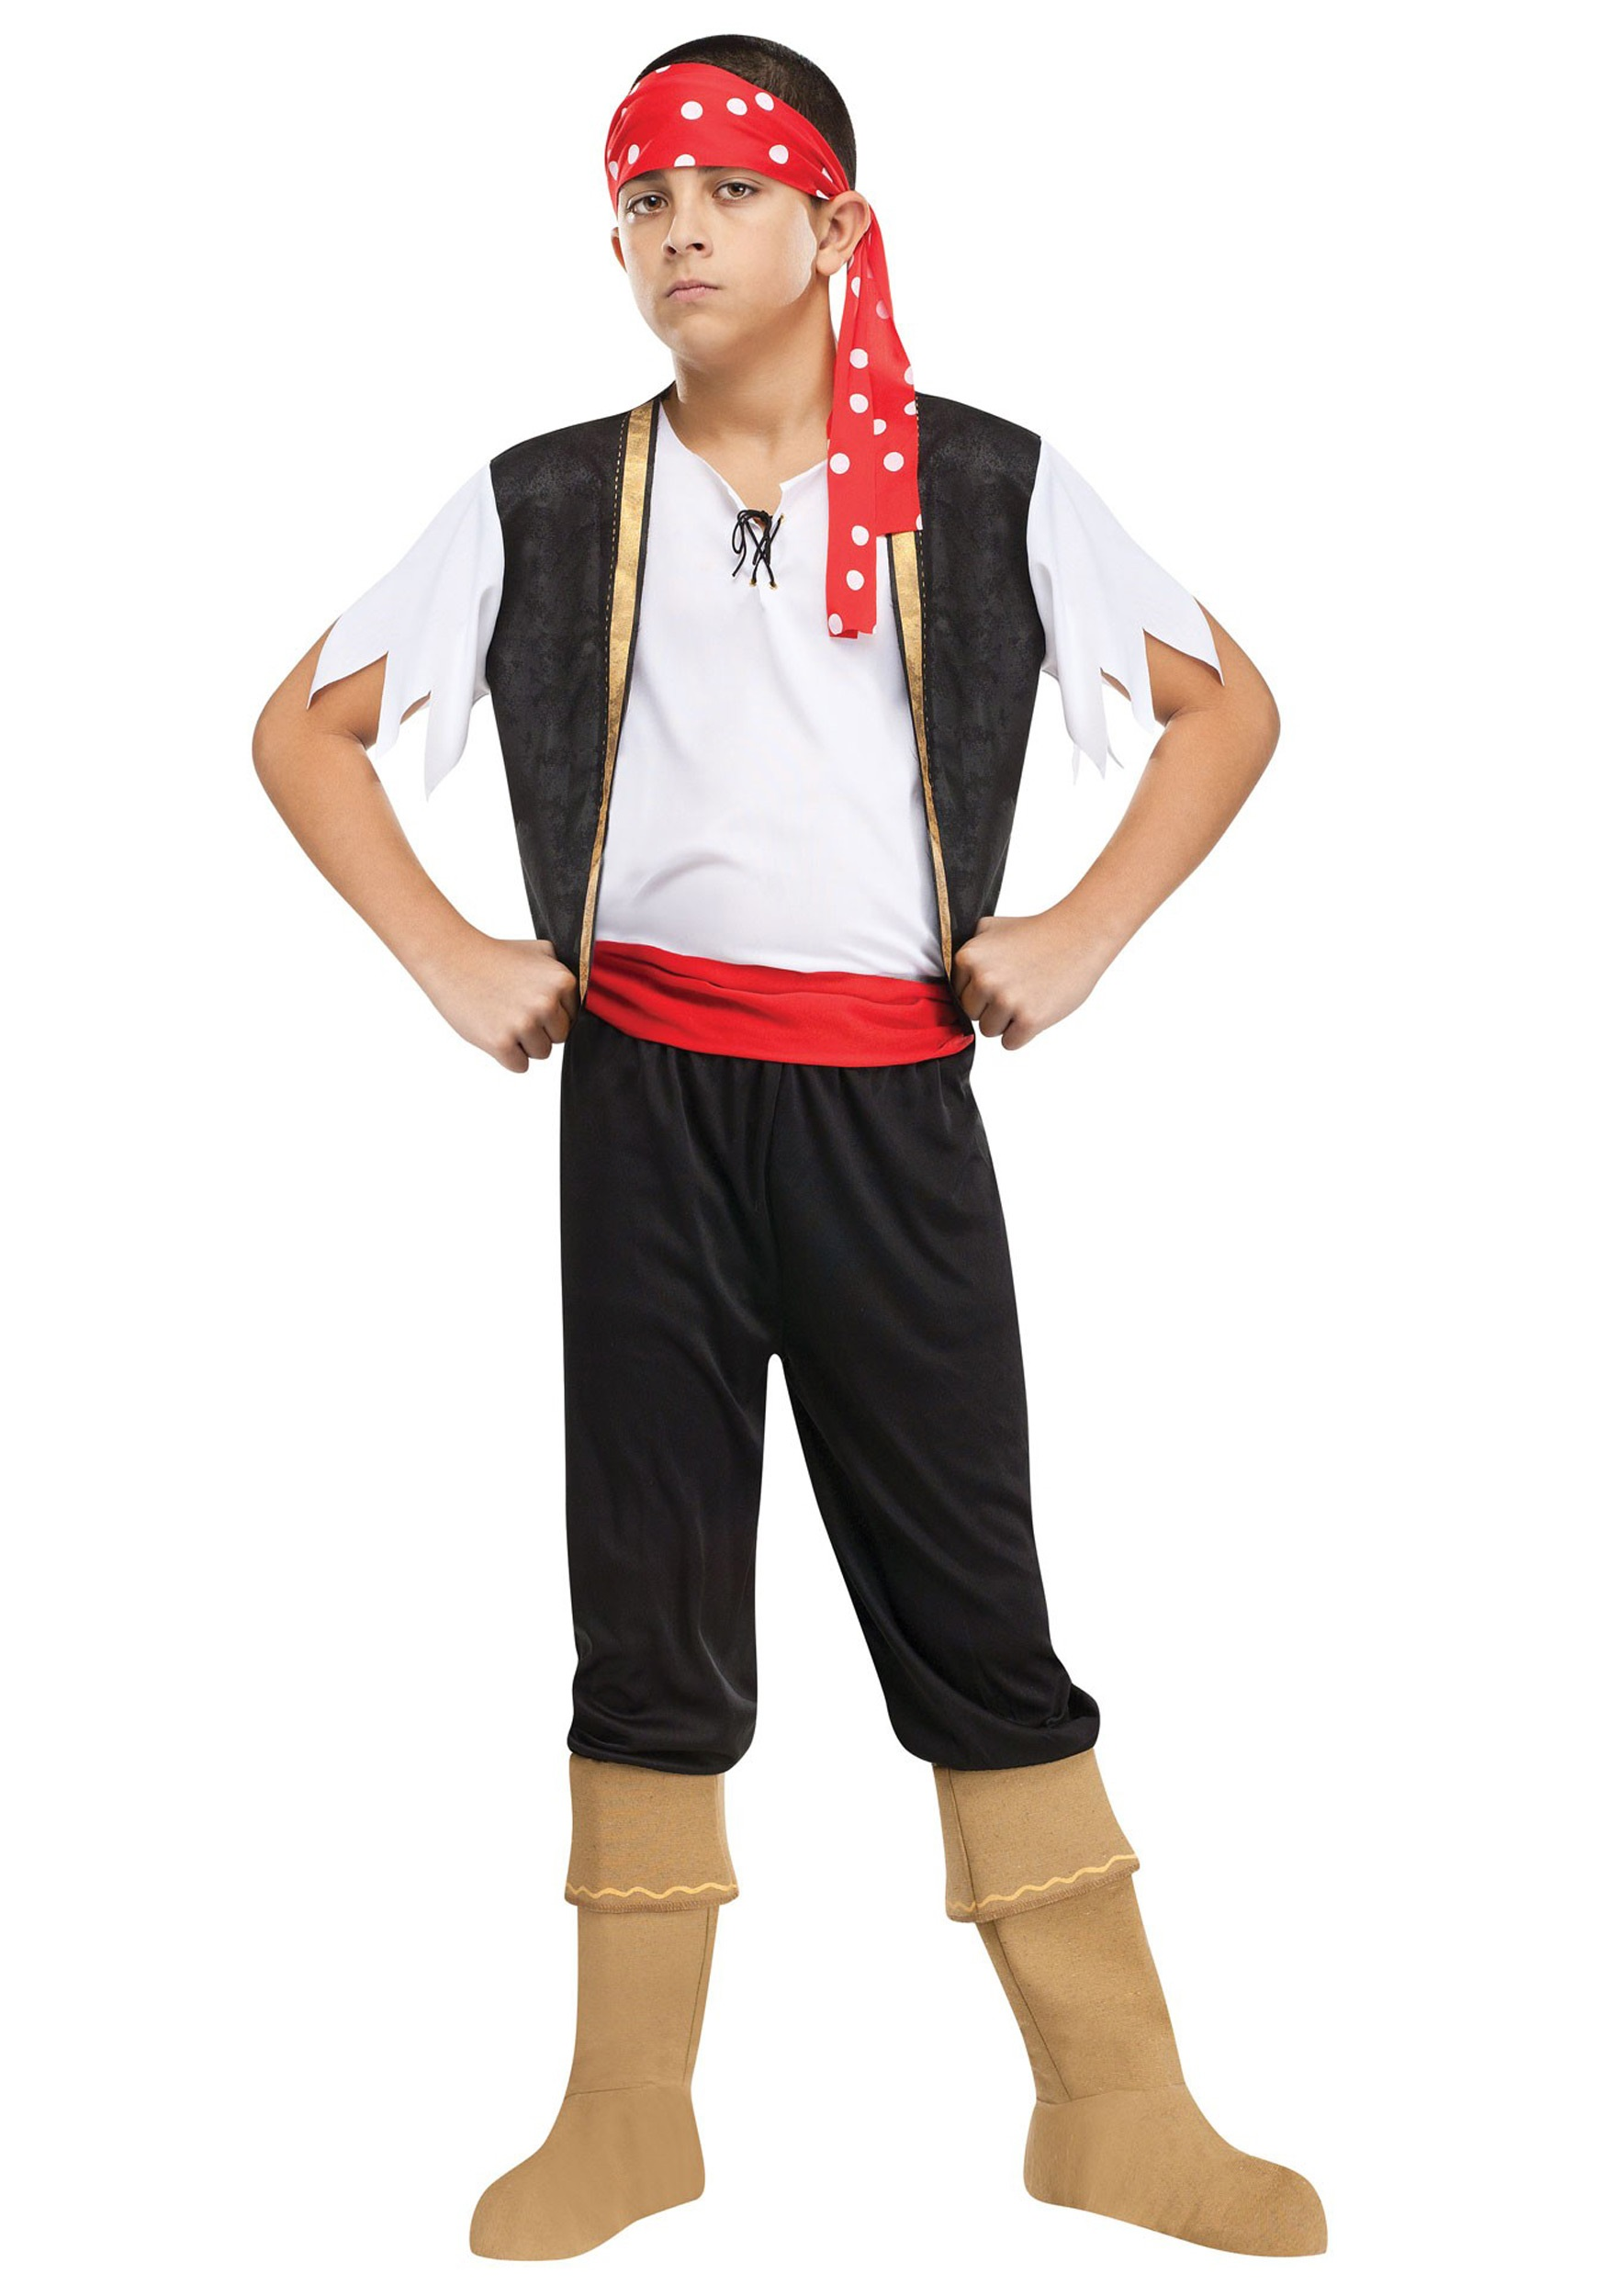 Child Ship Ahoy Pirate Costume  sc 1 st  Halloween Costumes & Child Ship Ahoy Pirate Costume - Halloween Costumes